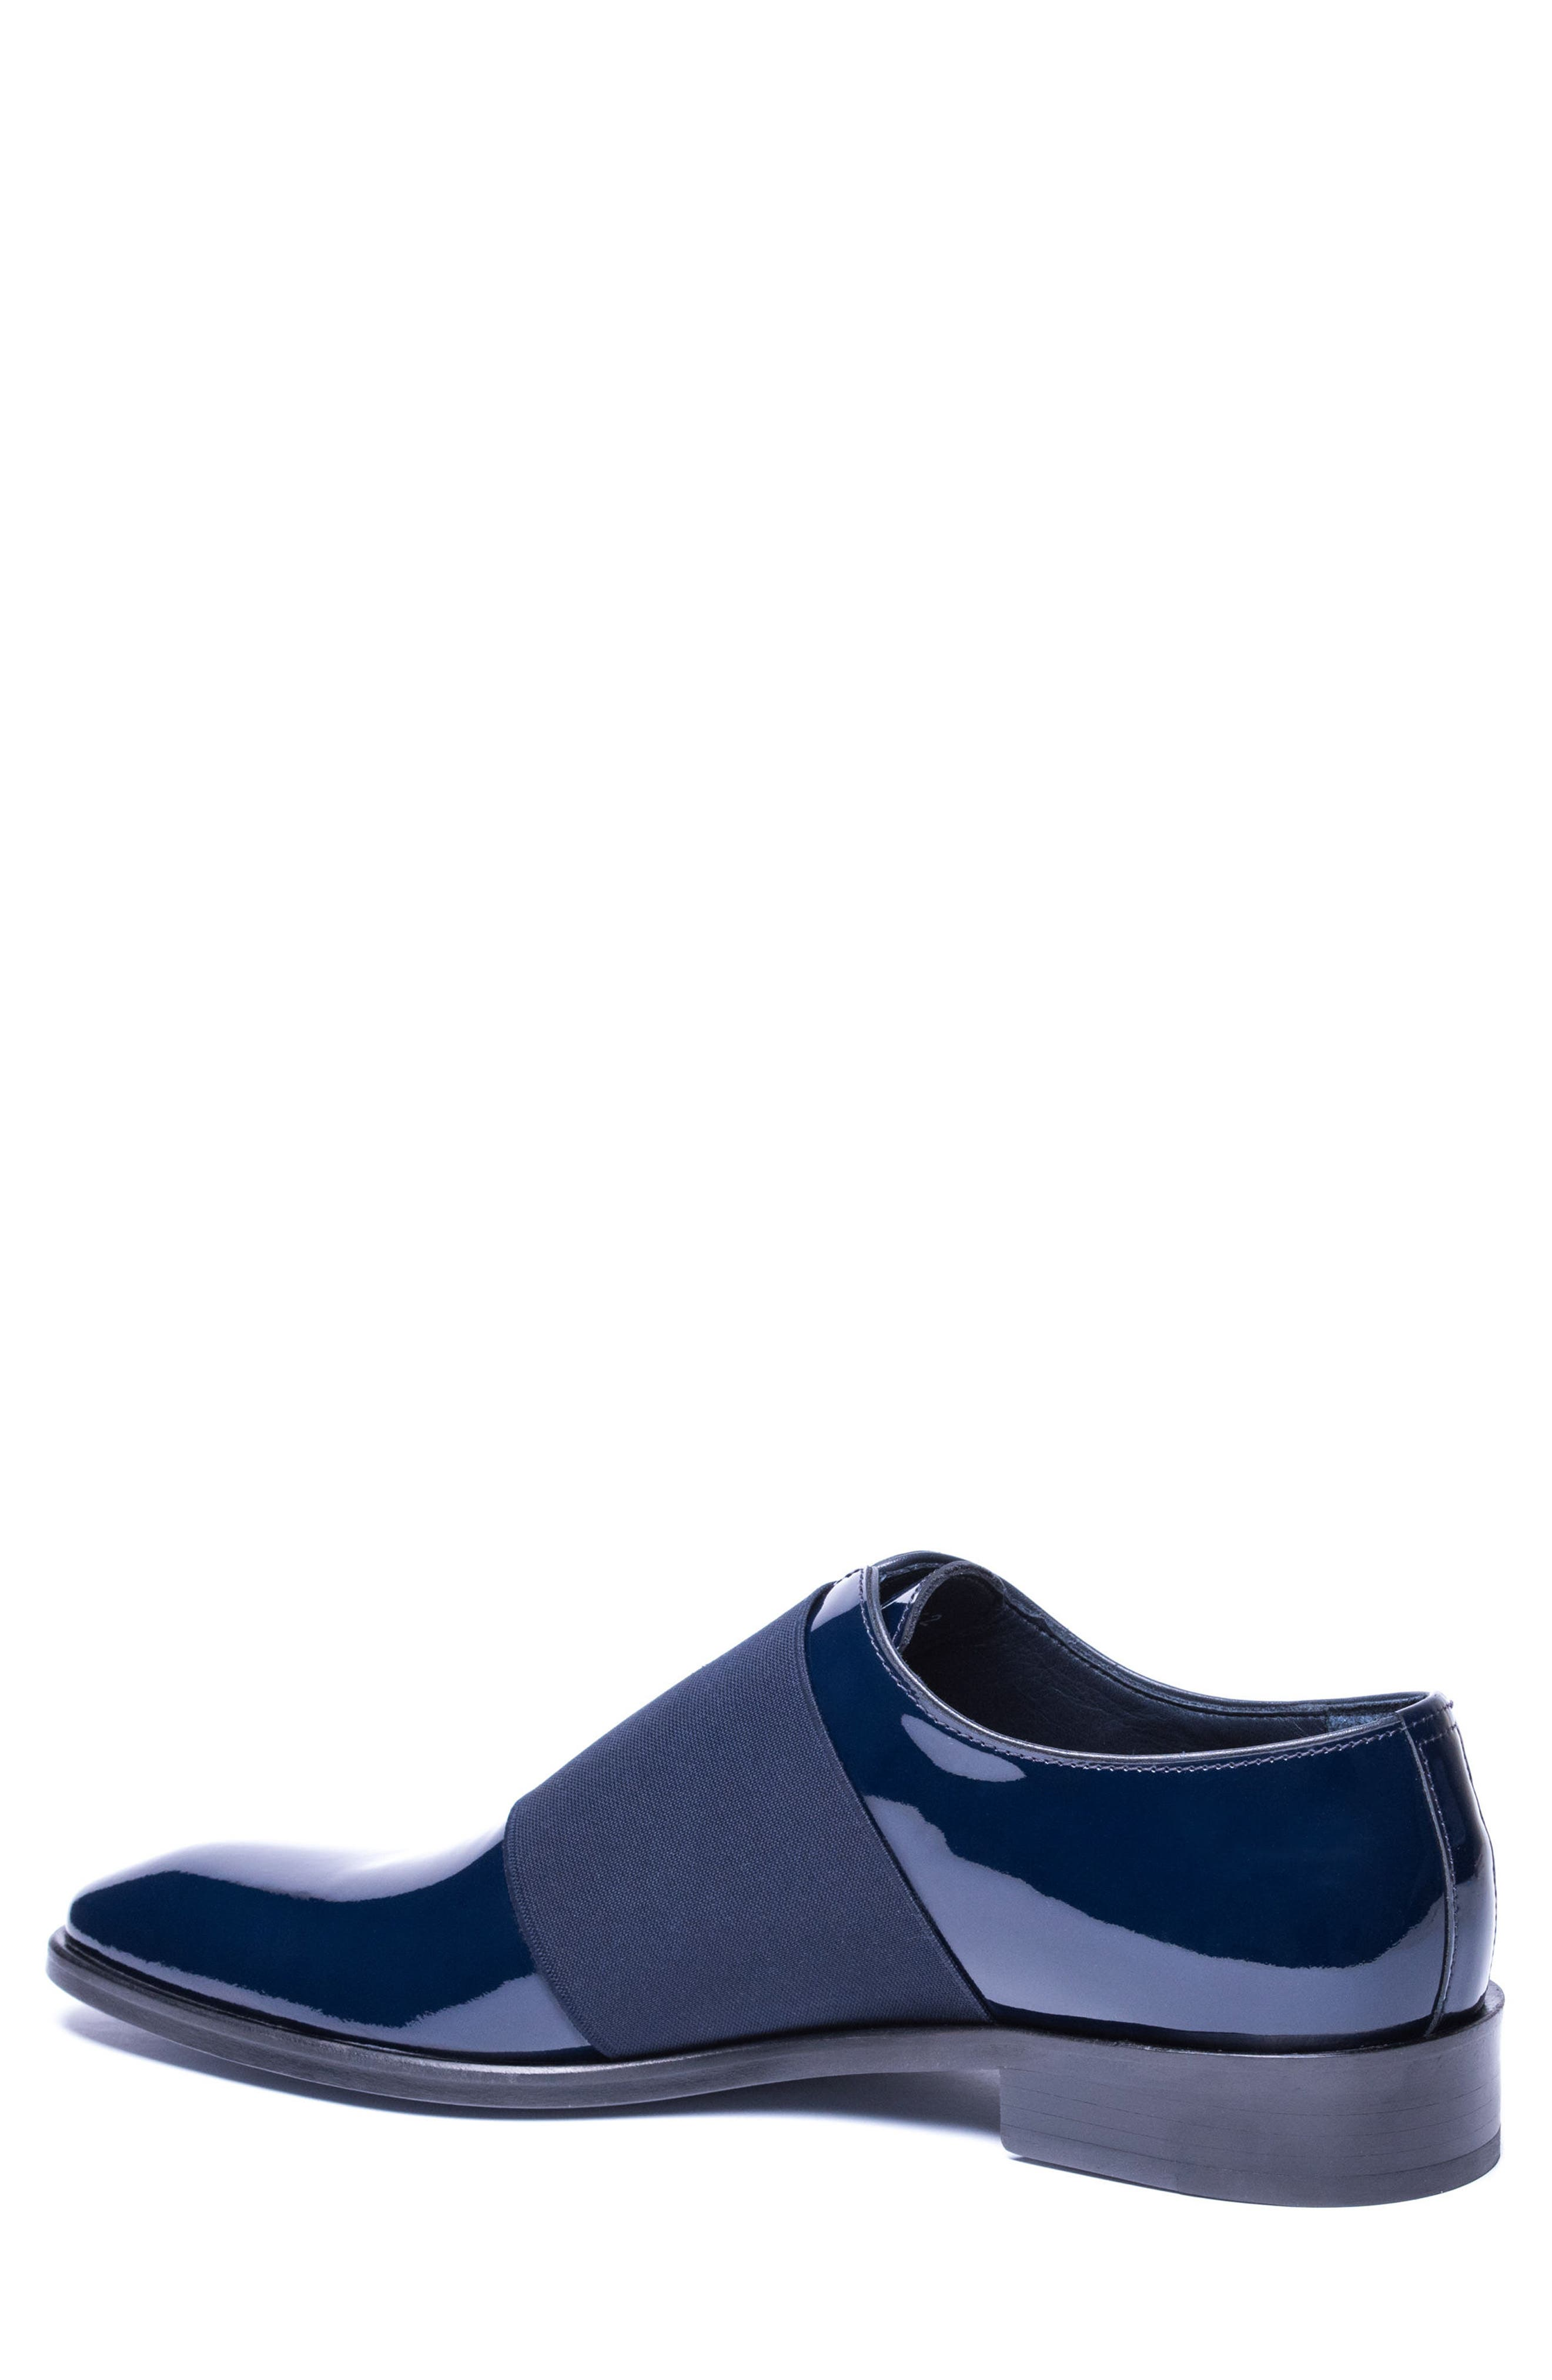 Vincenzo Whole Cut Slip-On,                             Alternate thumbnail 2, color,                             Navy Leather